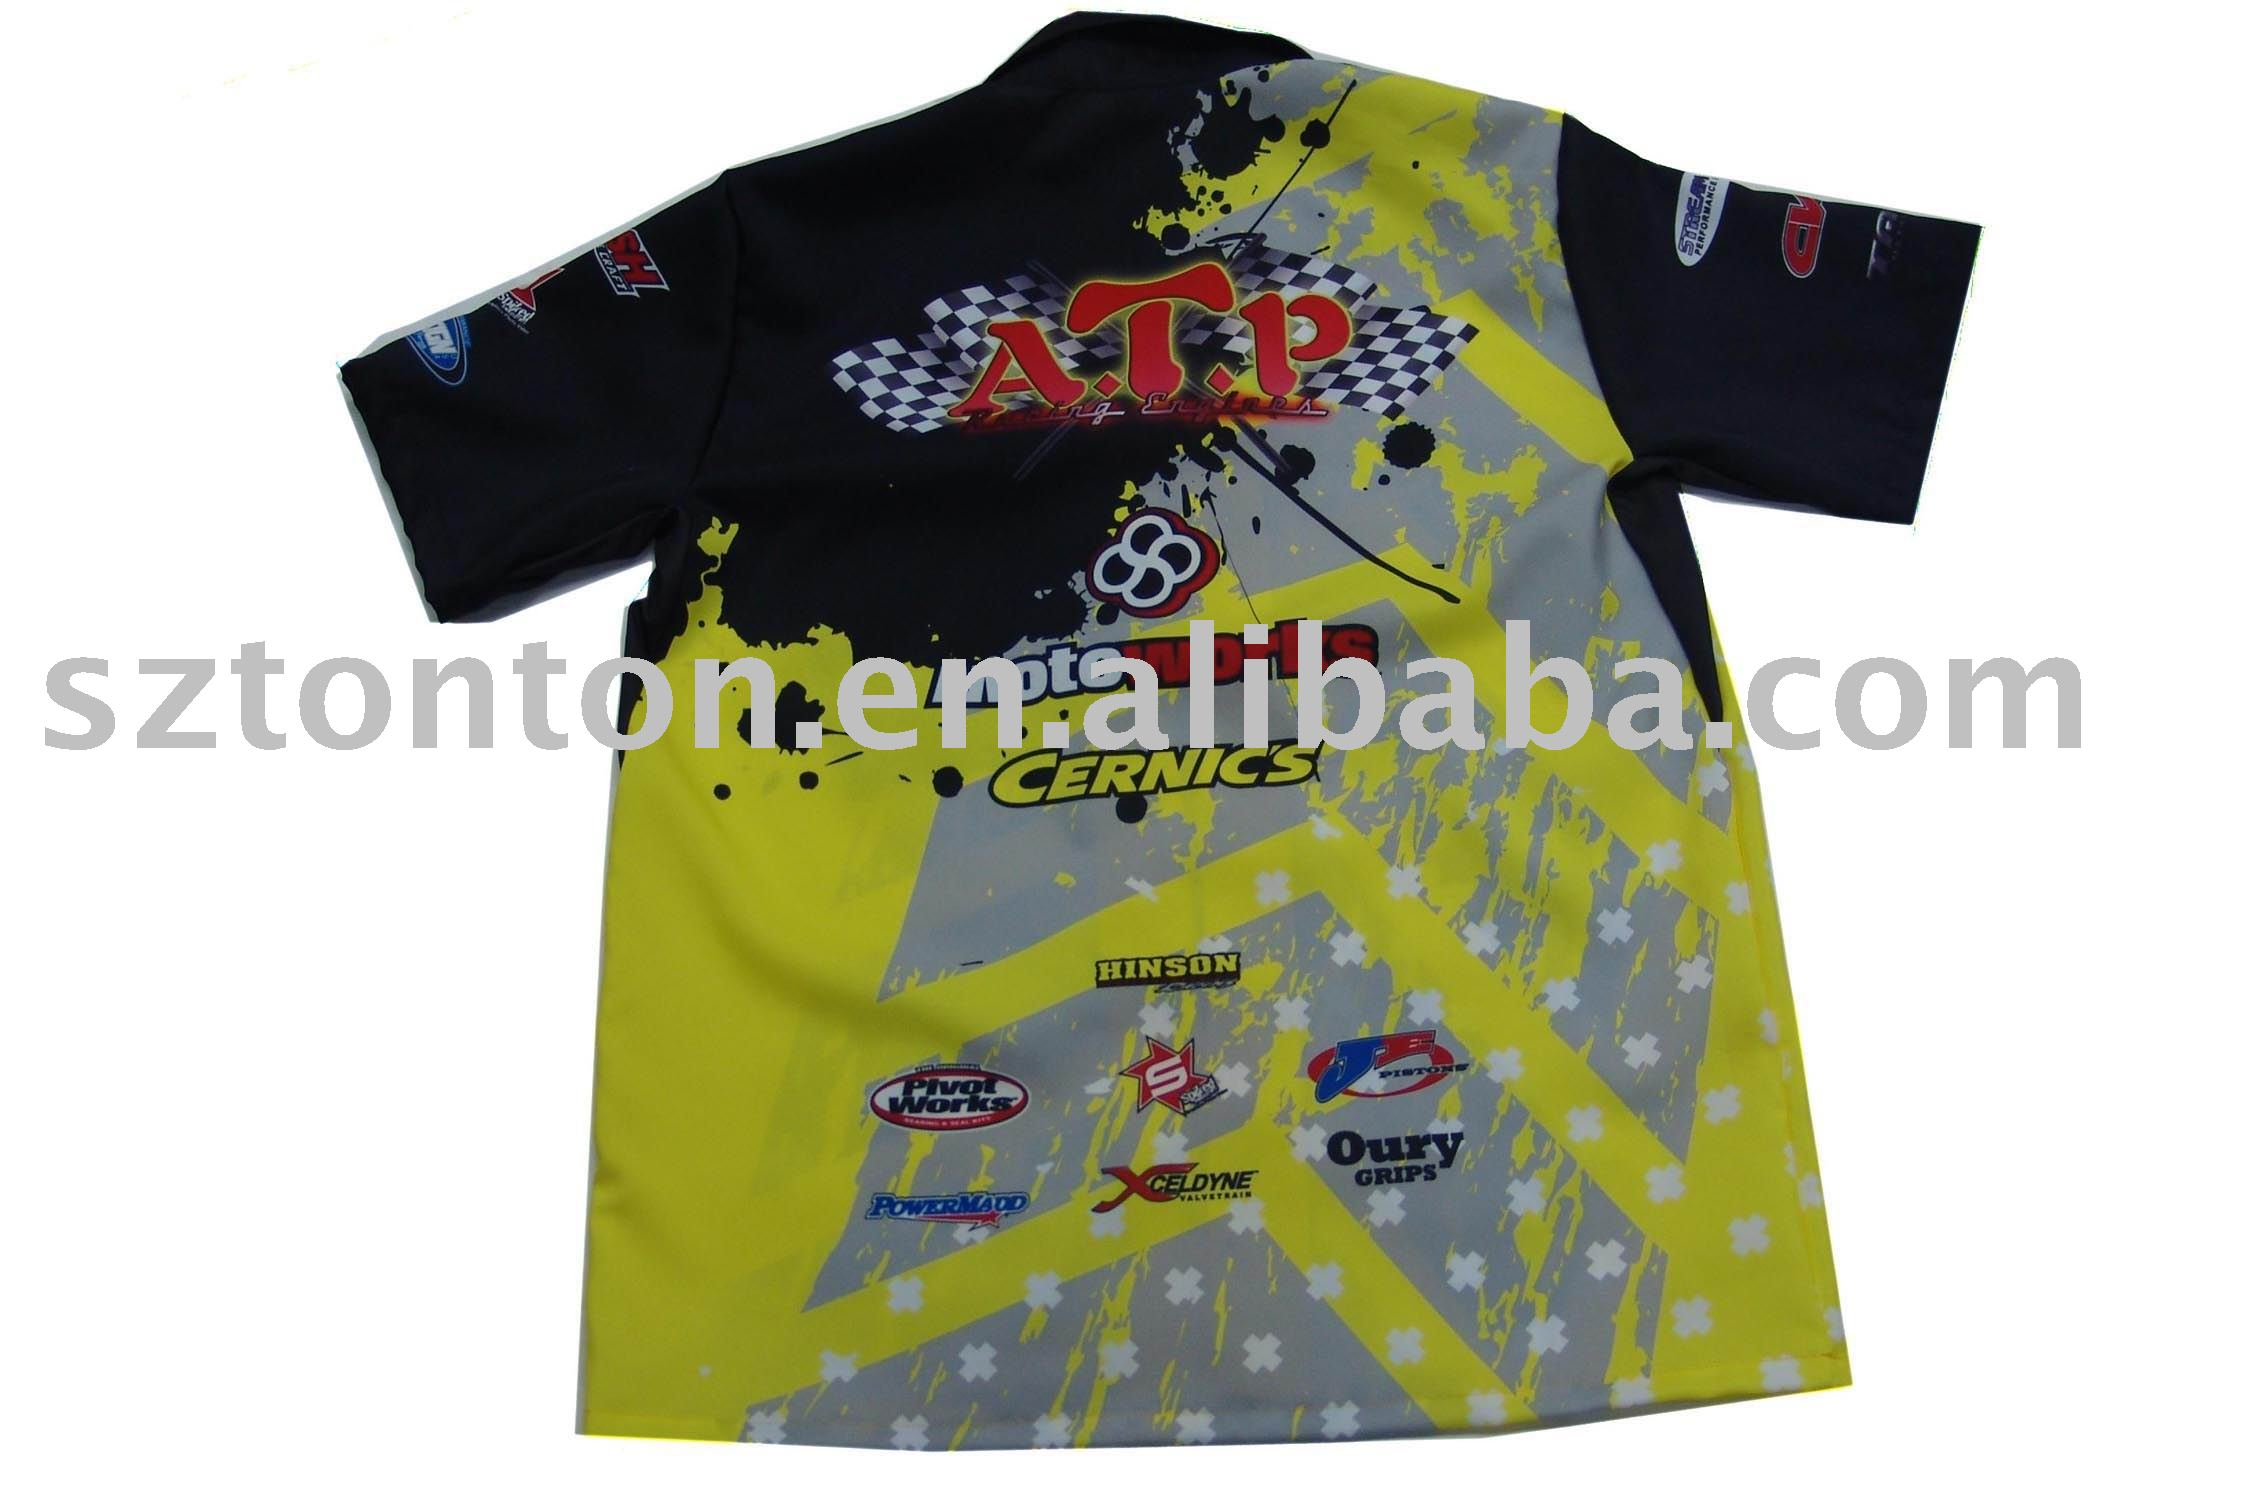 Dye sublimation motorcycle shirts